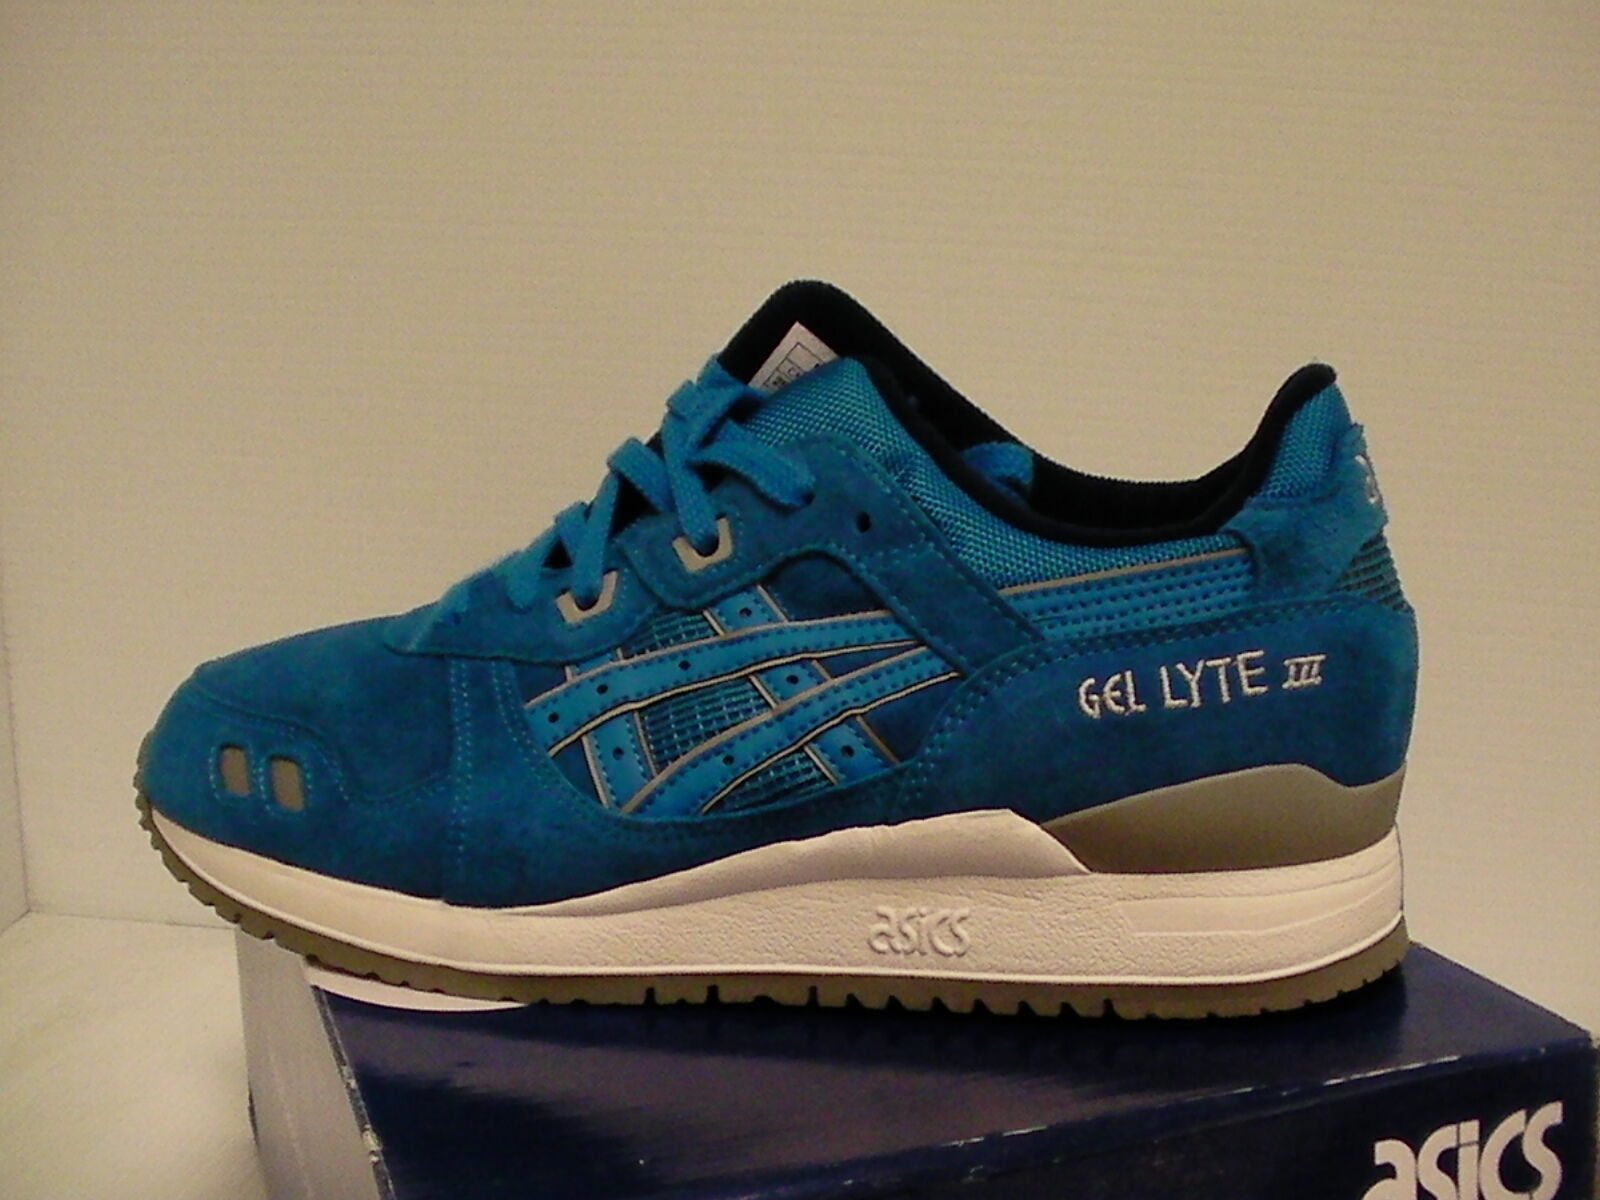 Primary image for Asics running shoes gel-lyte iii size 8.5 us men blue new with box